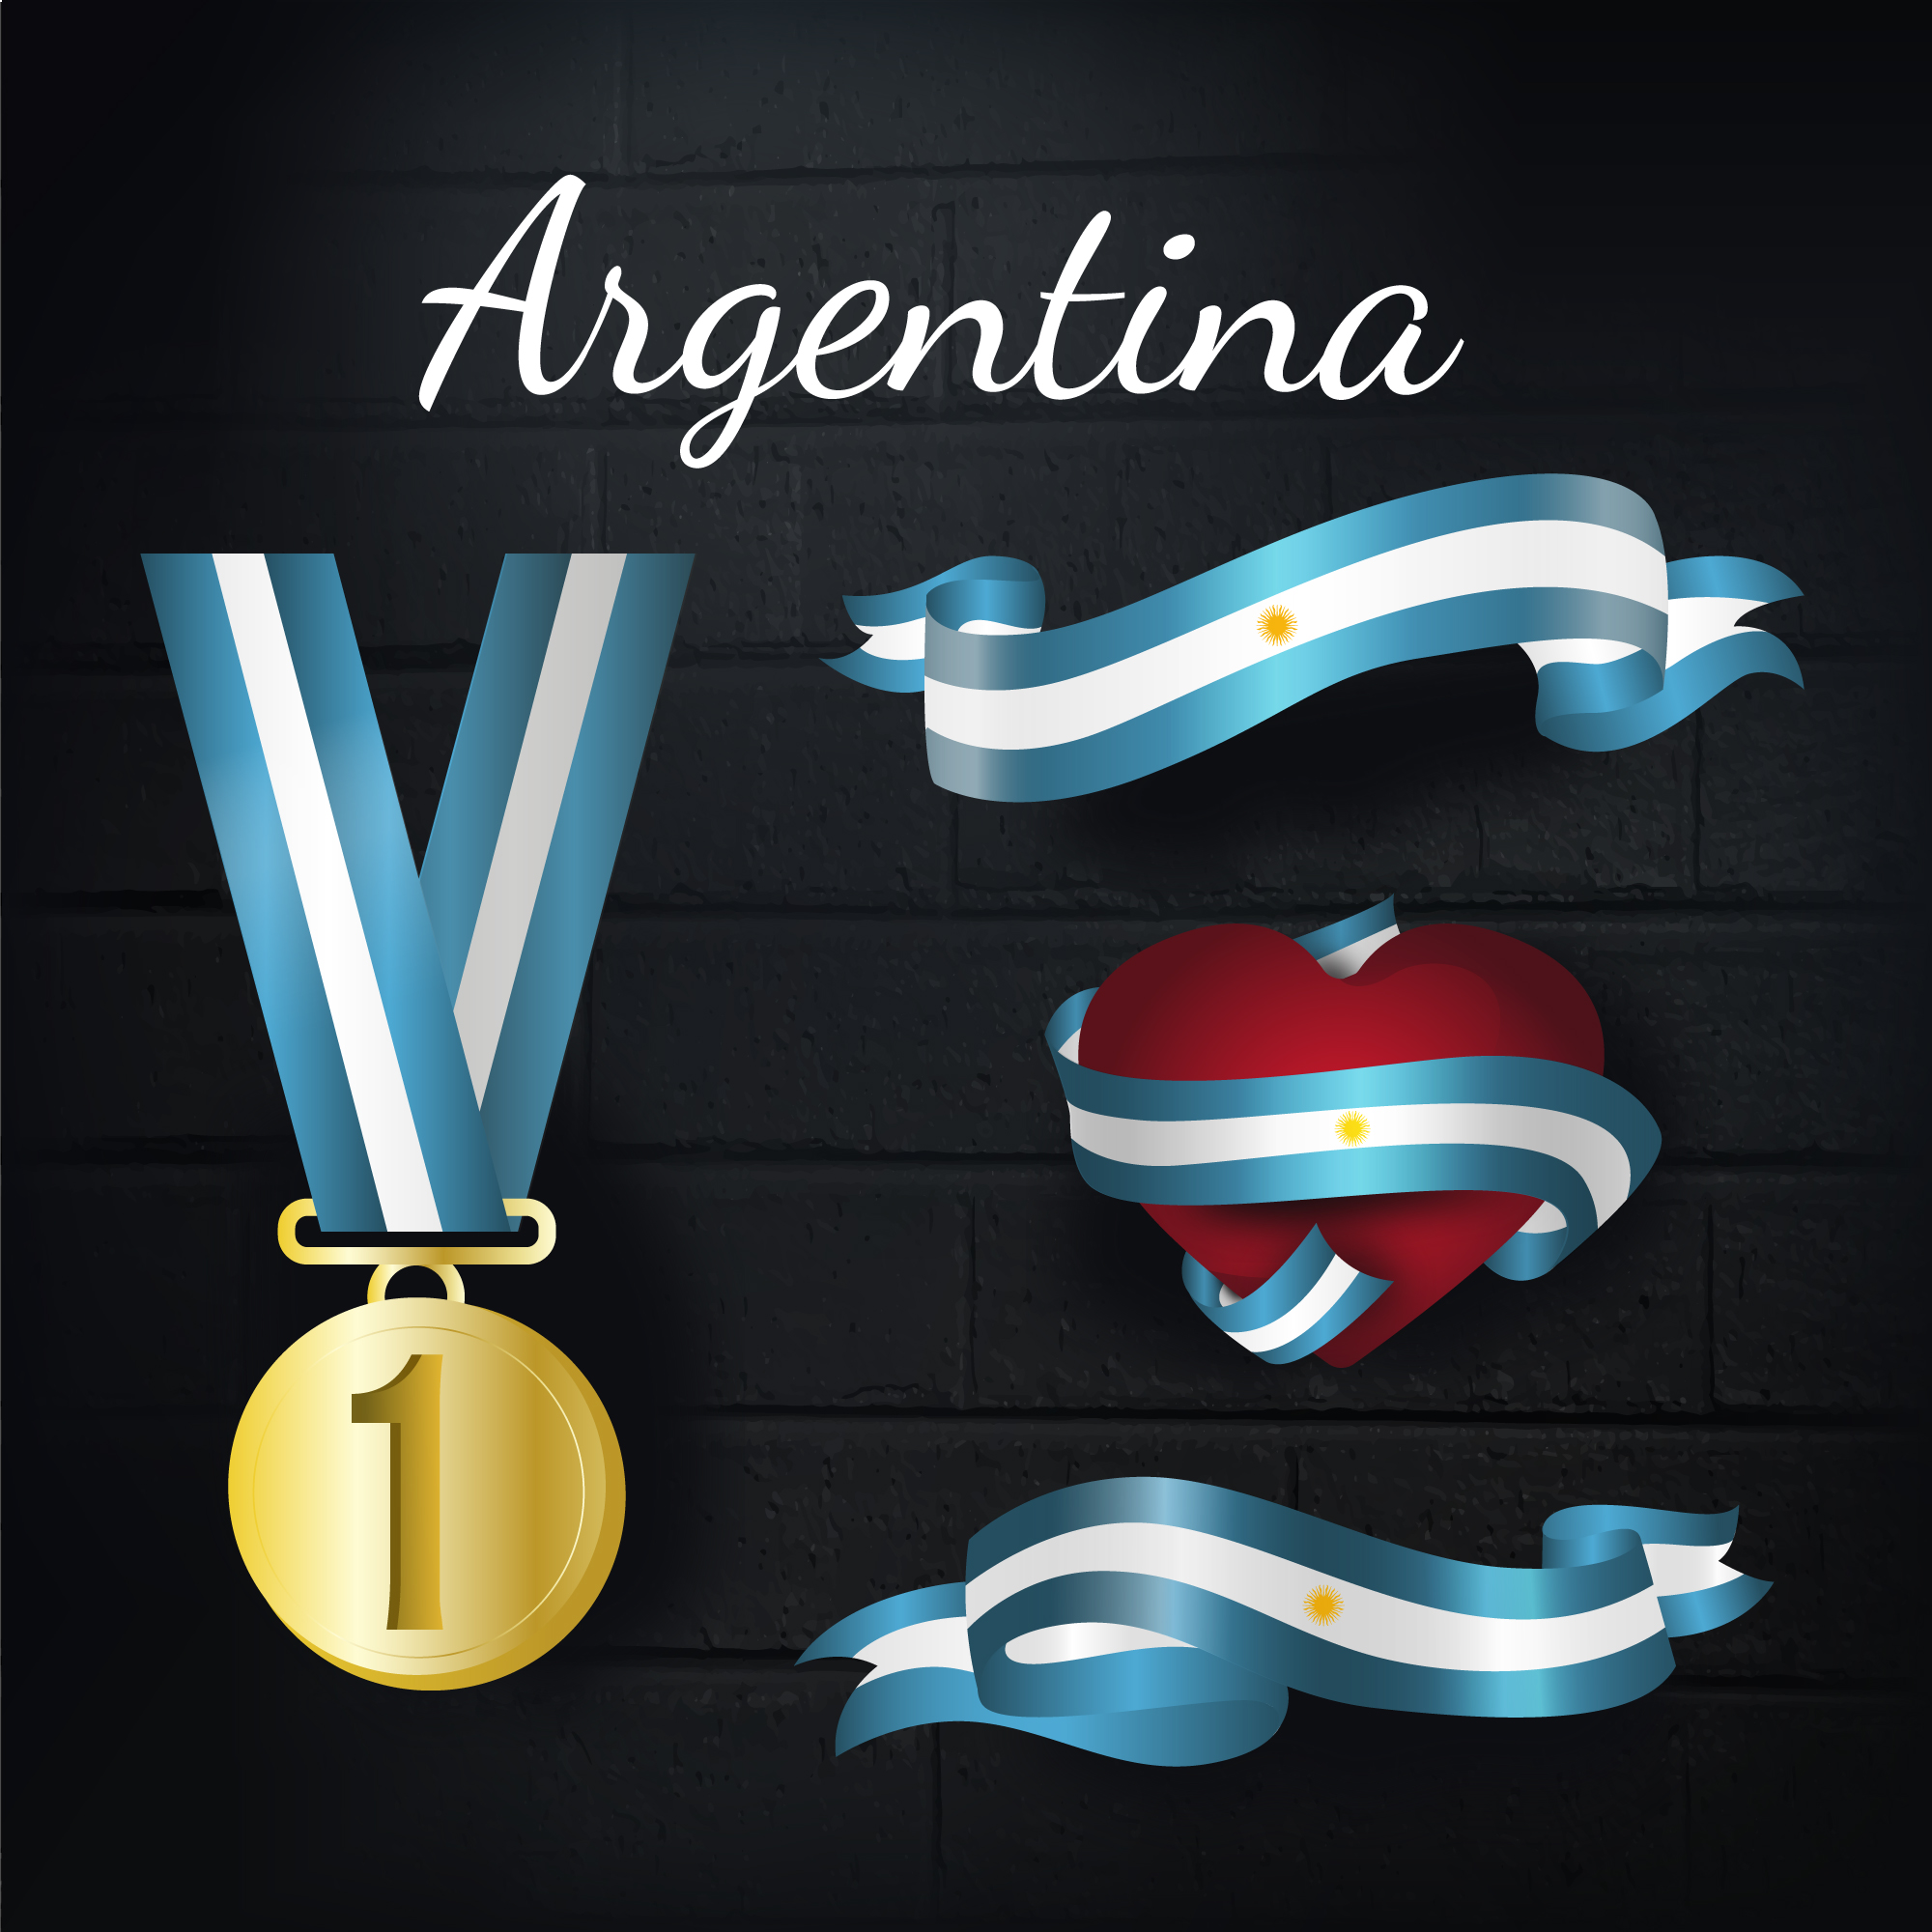 Argentina gold medal and ribbons collection